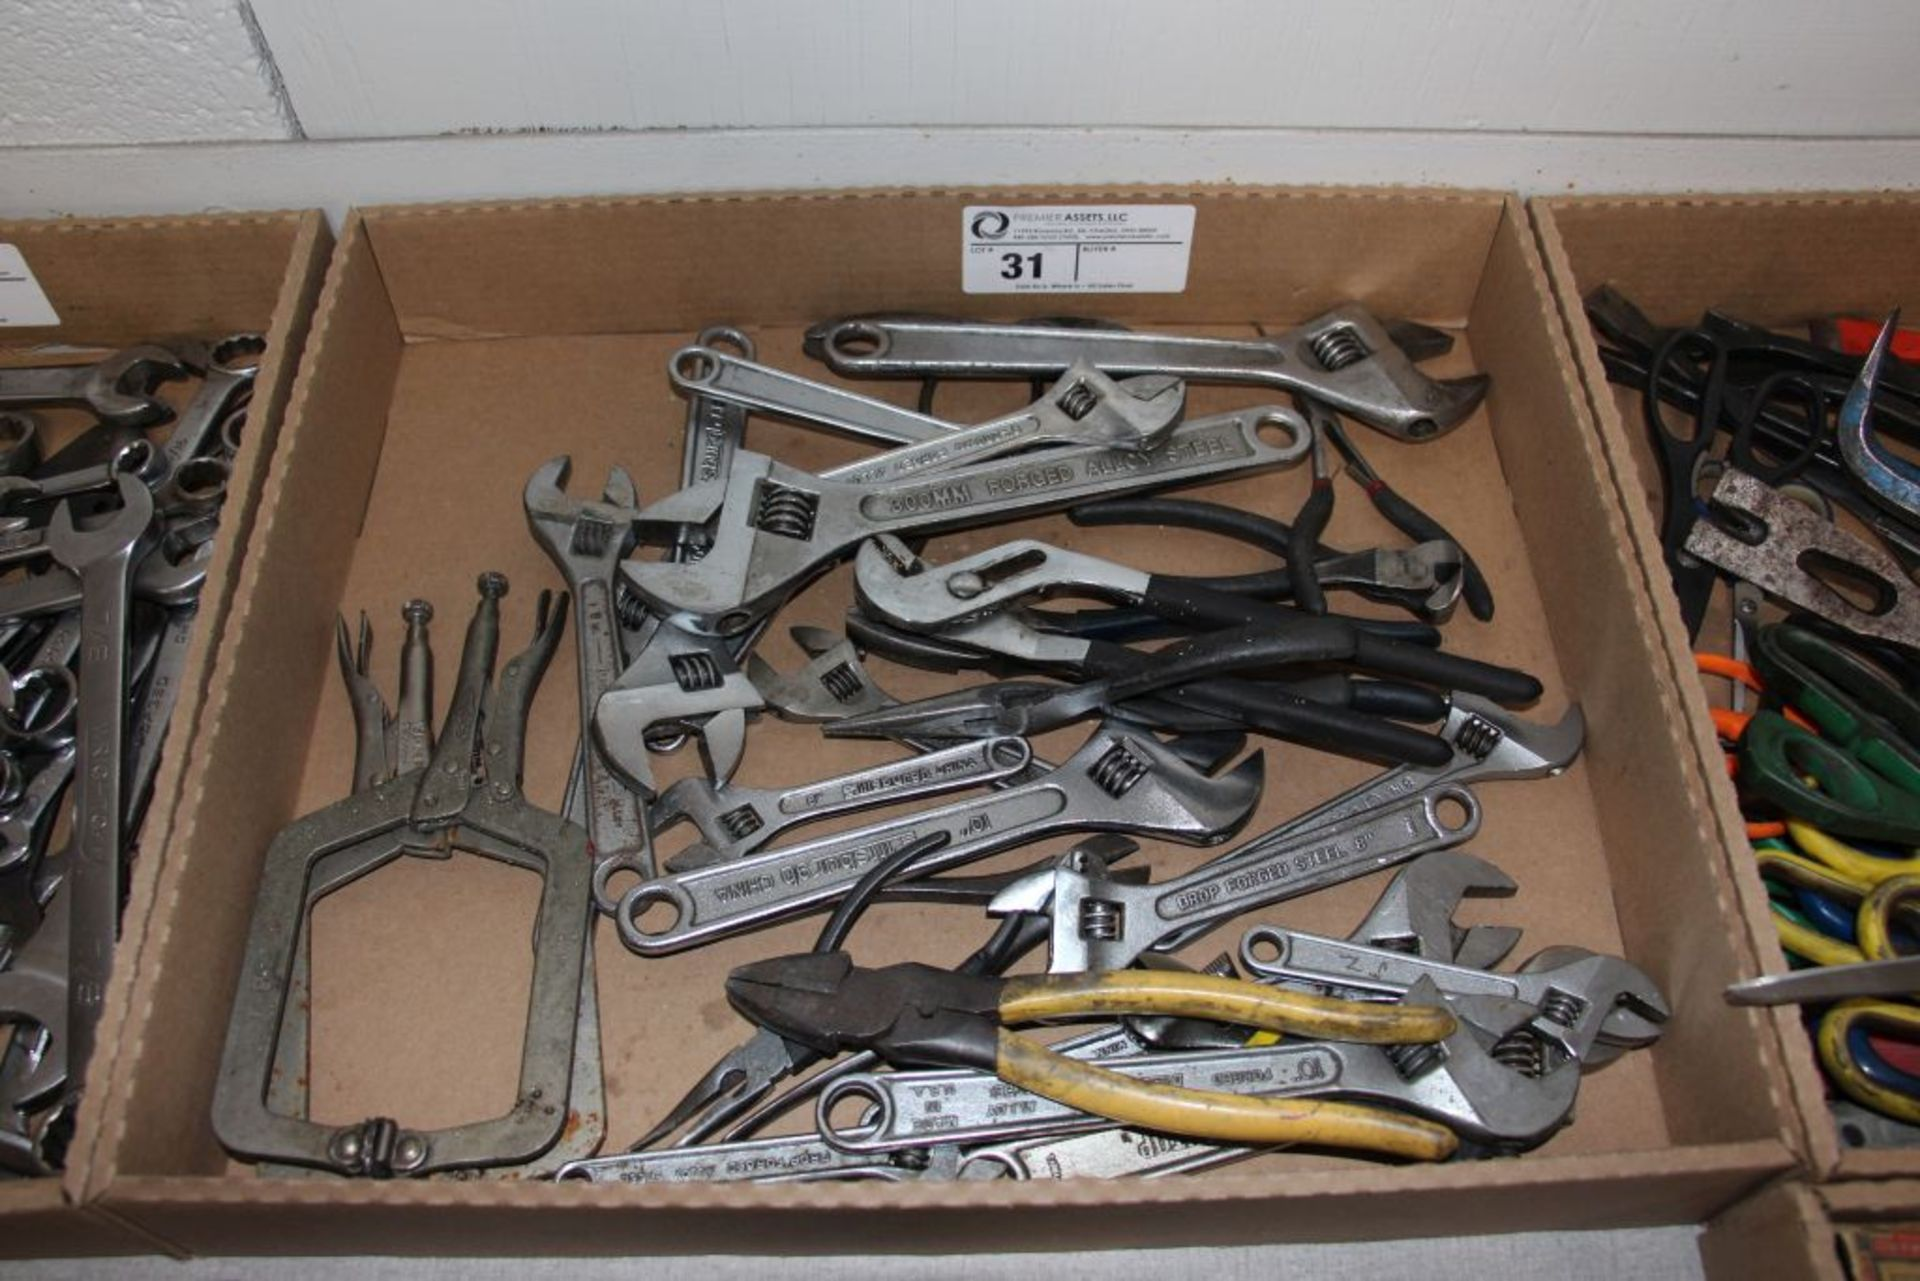 "Lot 31 - assortment of crescent wrenches, 6"" - 12"" & misc."